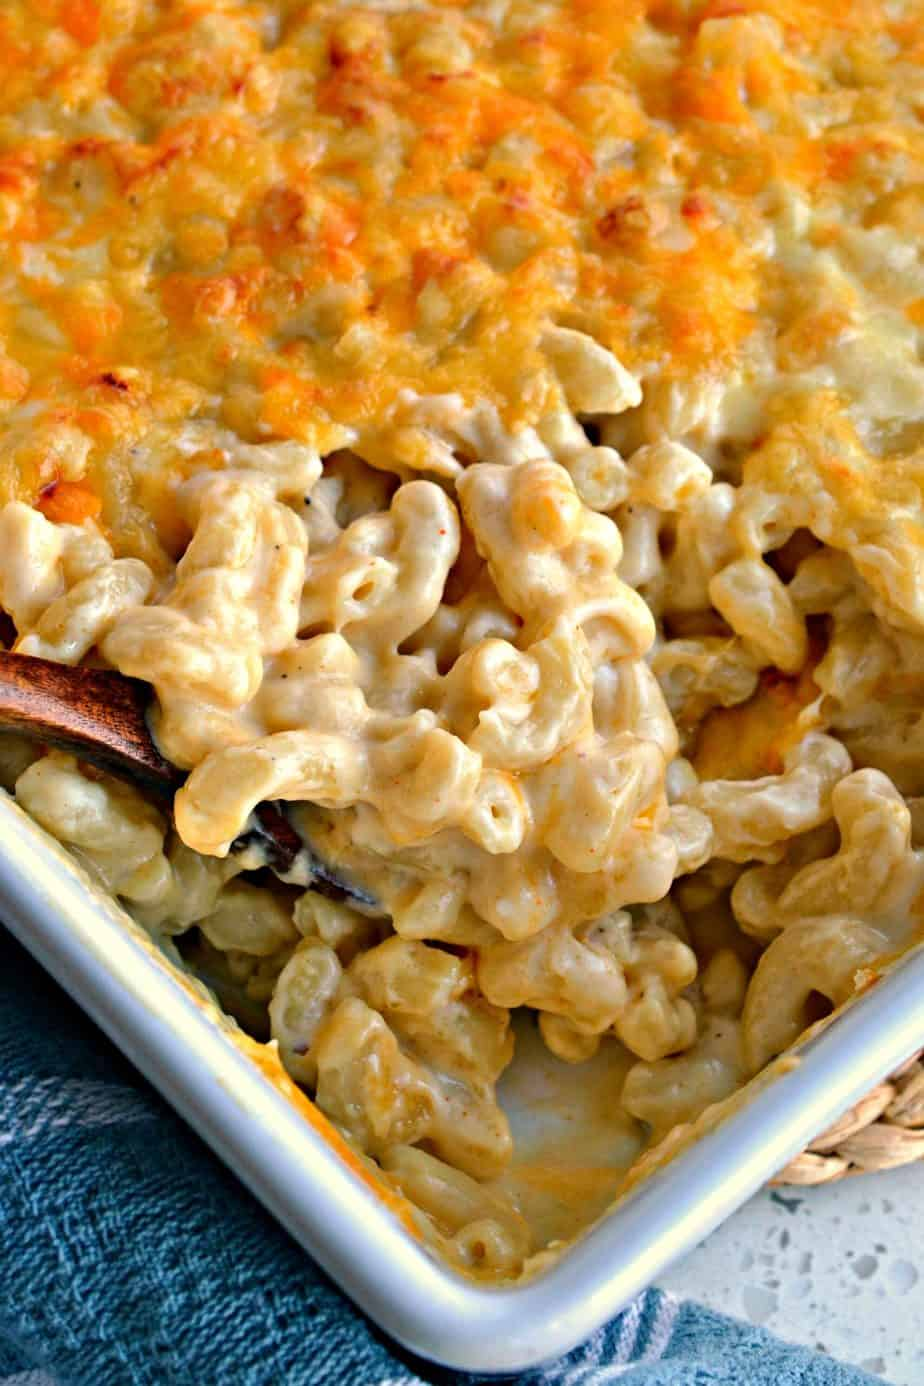 This Baked Macaroni and Cheese is over the top heavenly creamy with oodles of the perfect blend of cheeses.